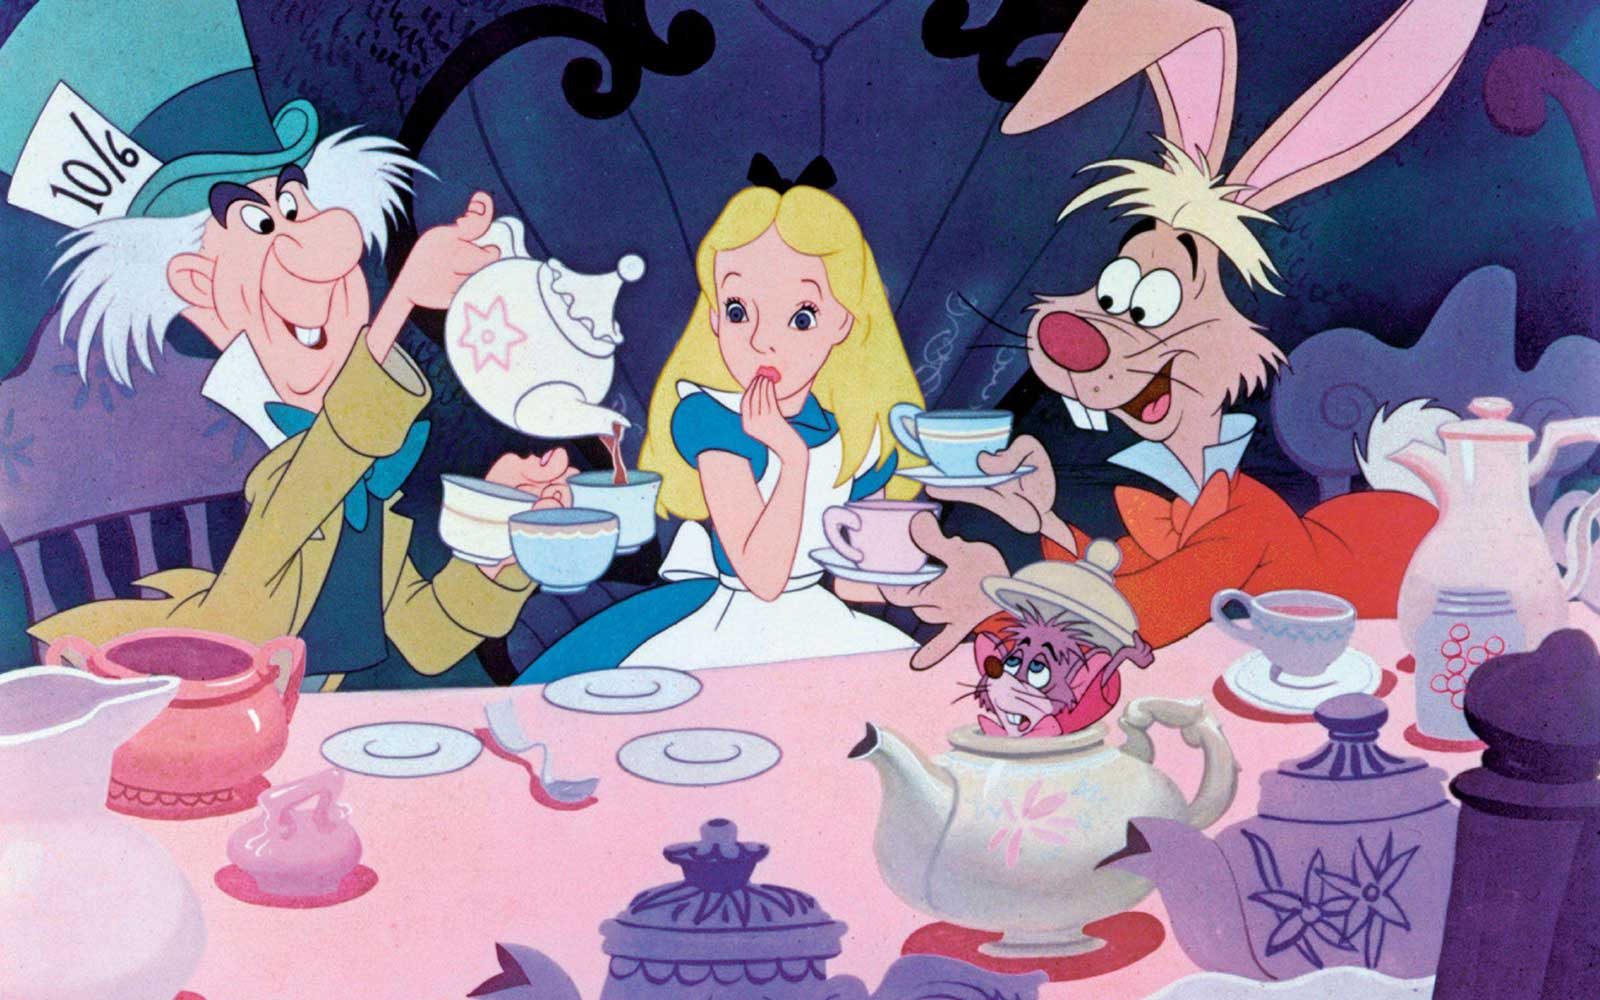 Animated scene from ALICE IN WONDERLAND